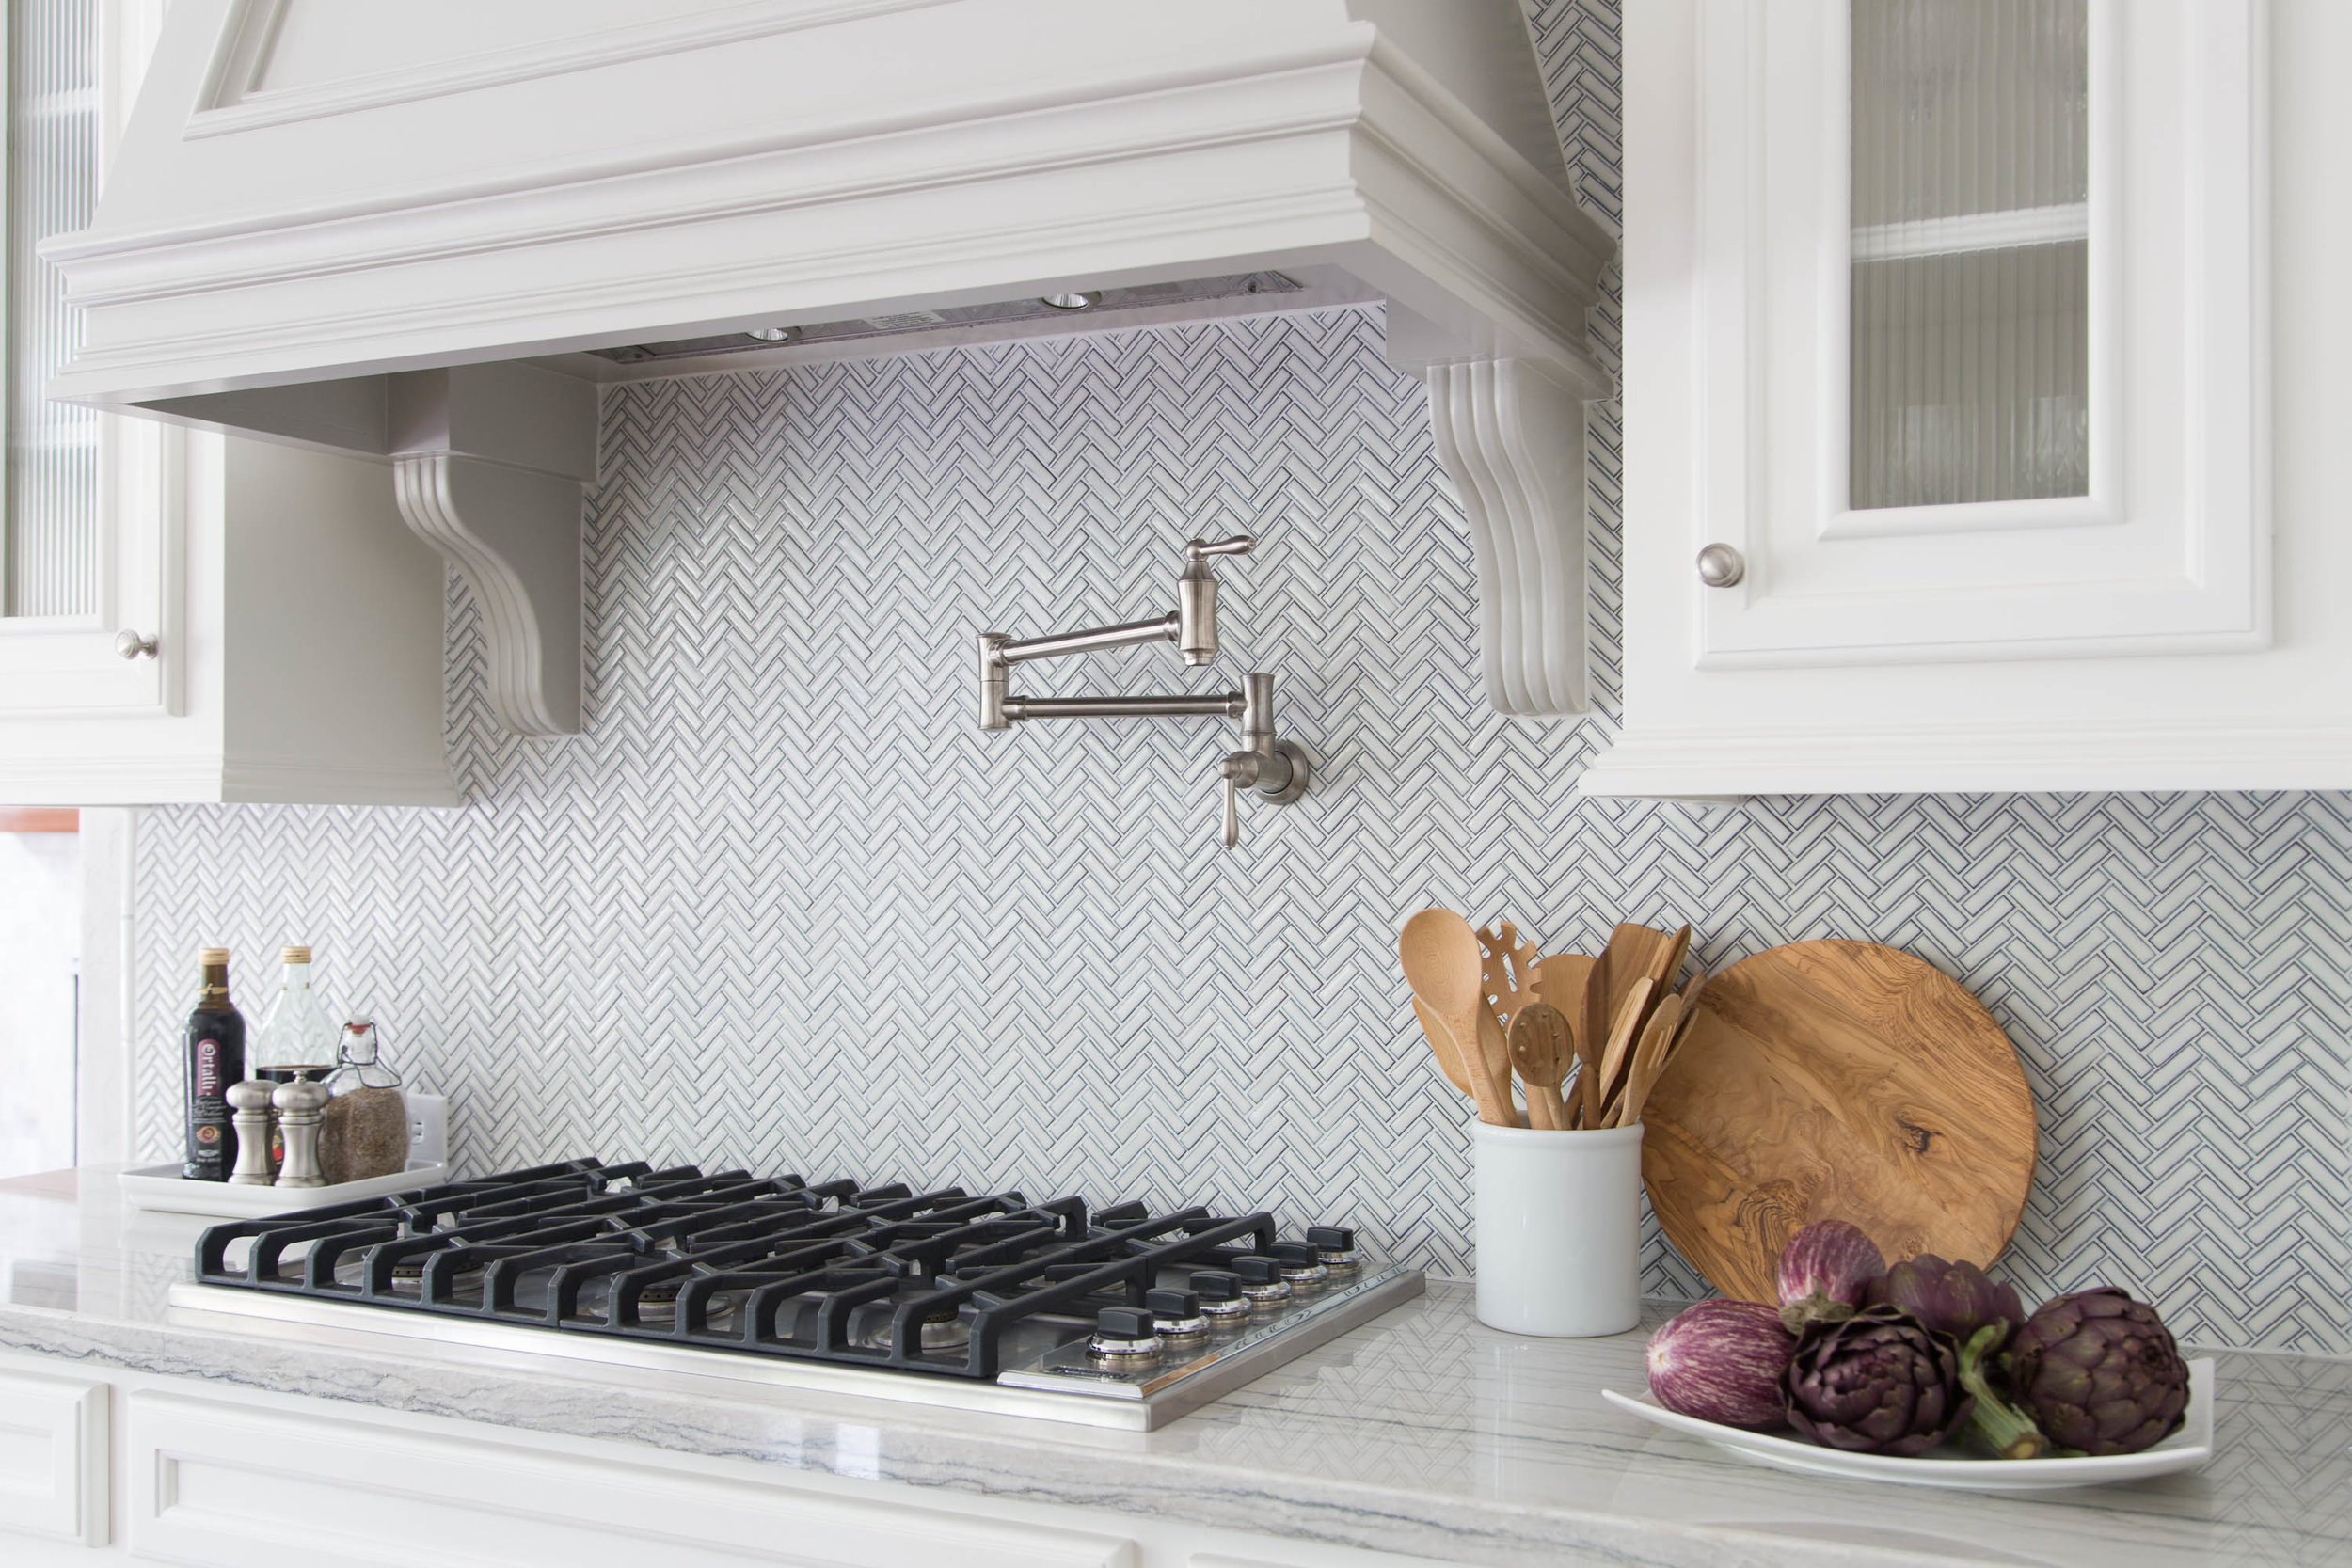 Kitchen Backsplash Details That Define Good Design - I\'m ...